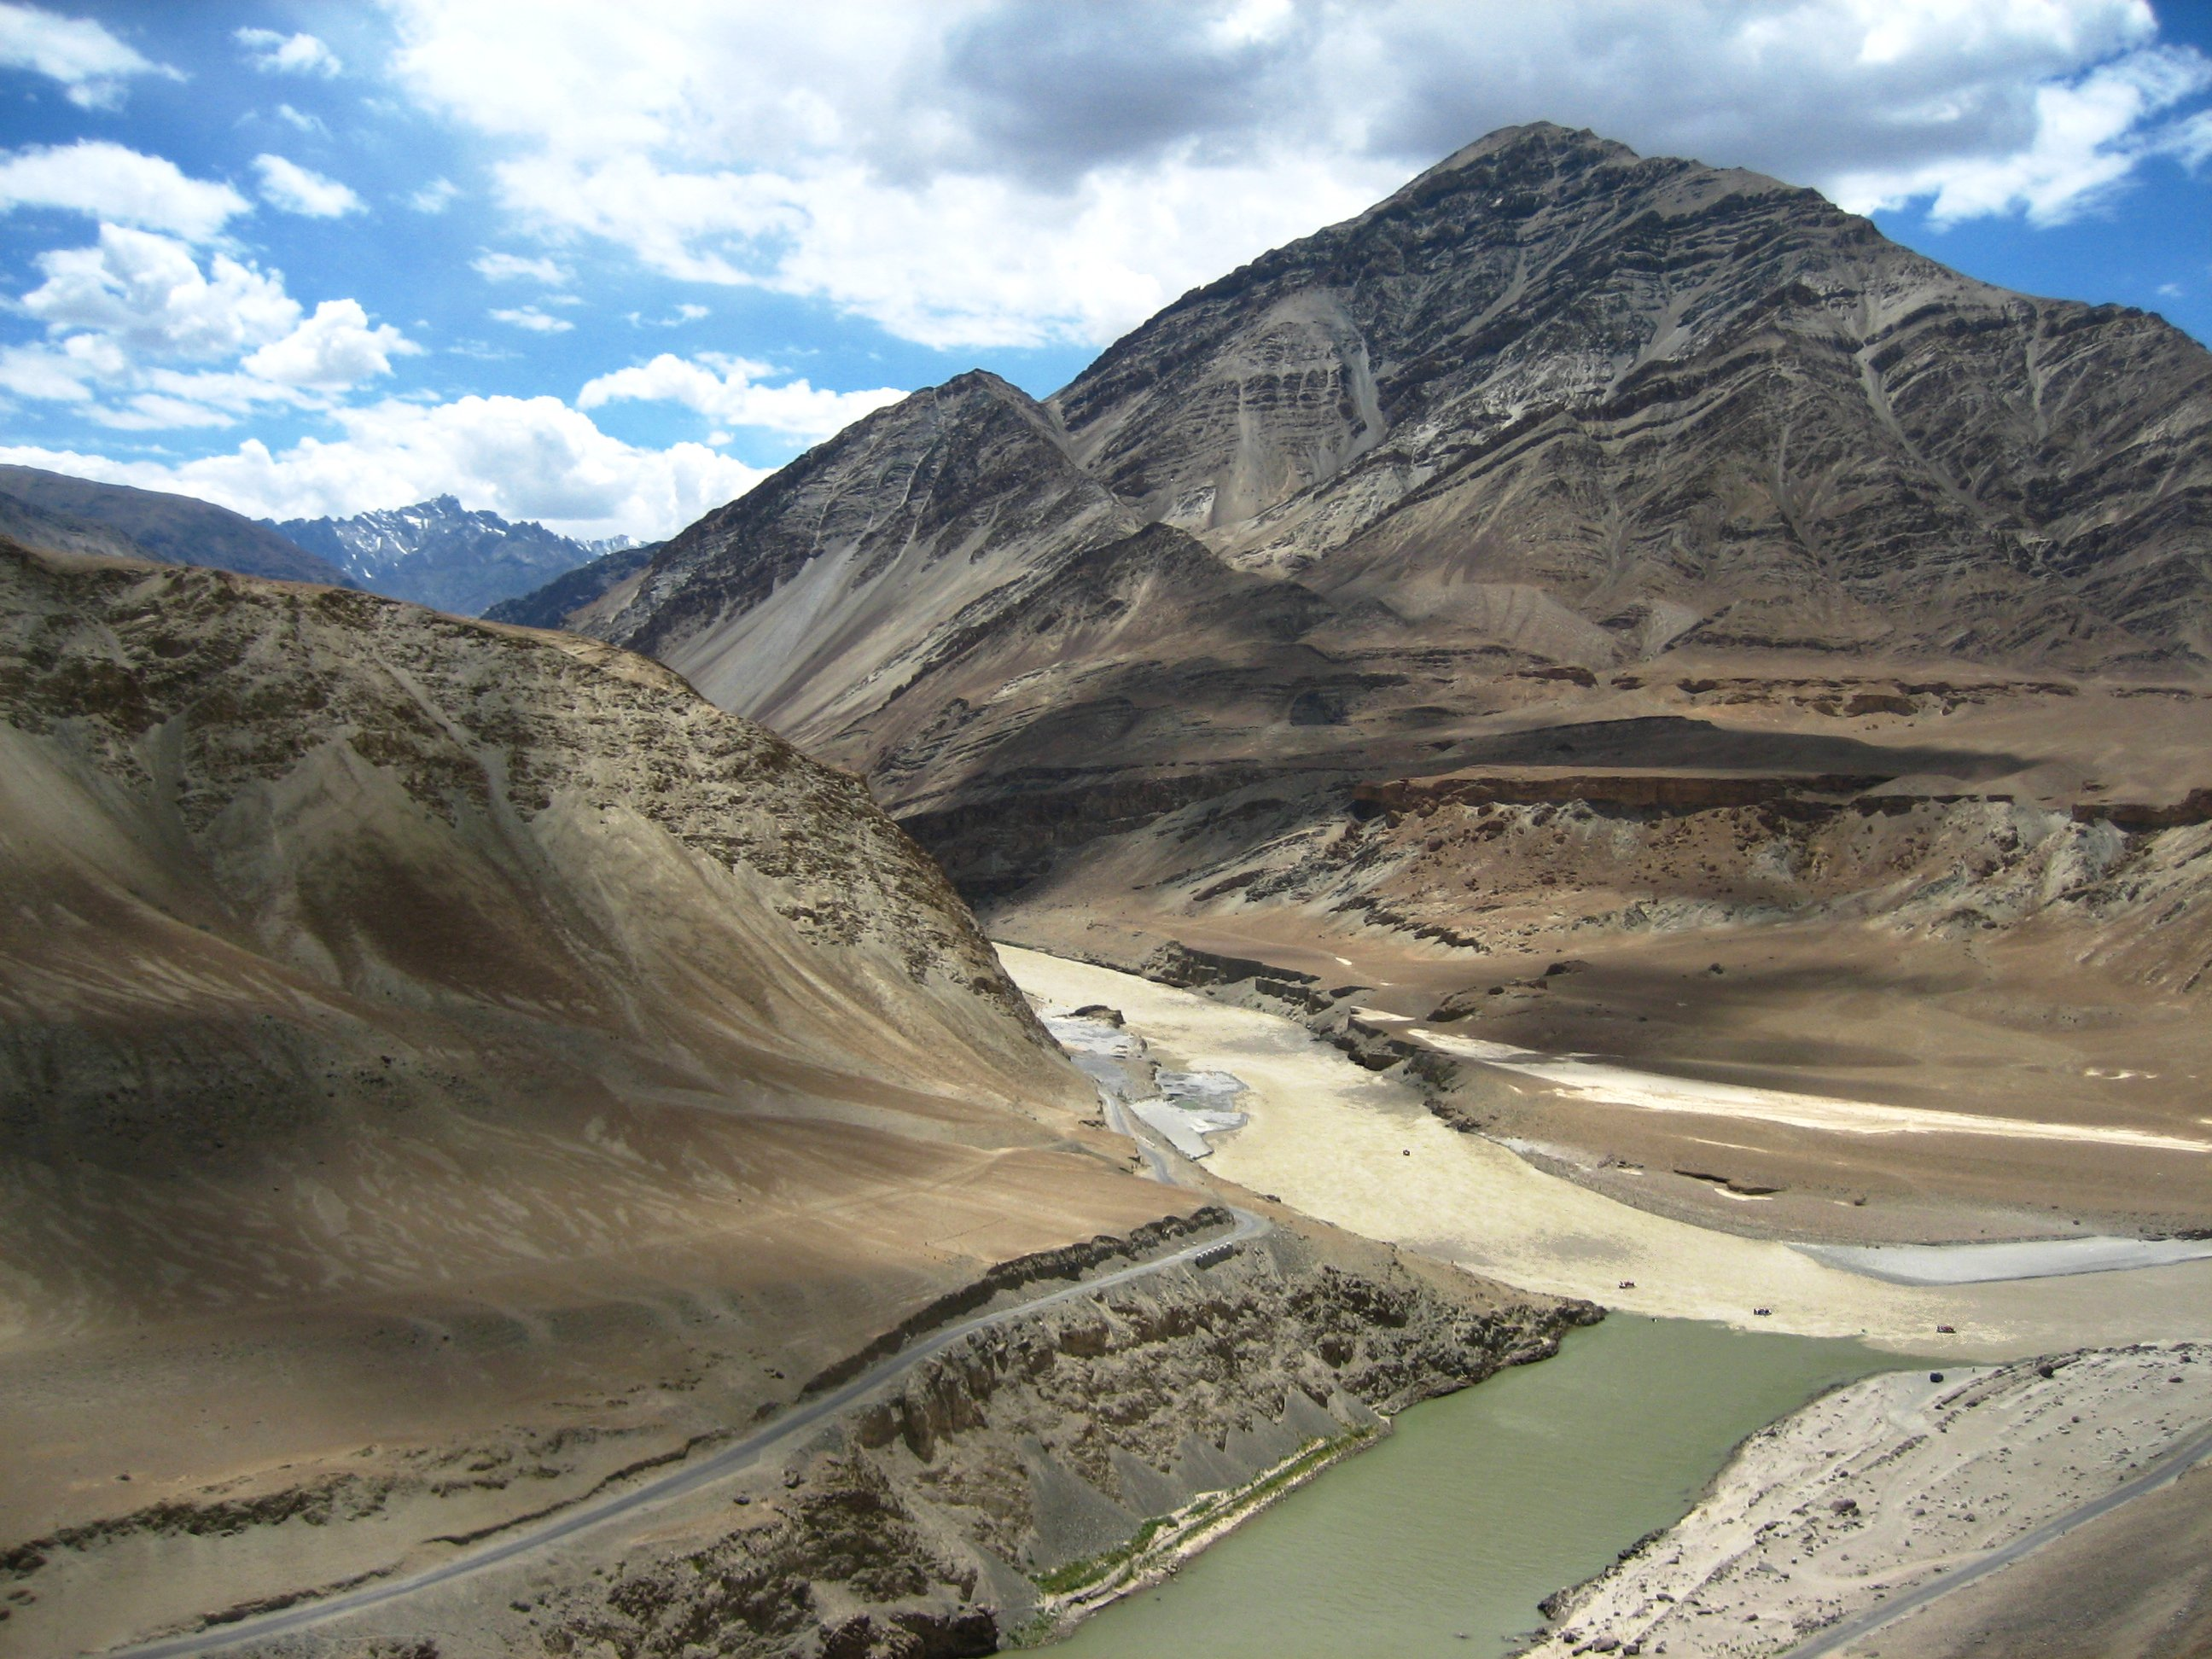 Confluence of the Indus and Zanskar Rivers in Leh